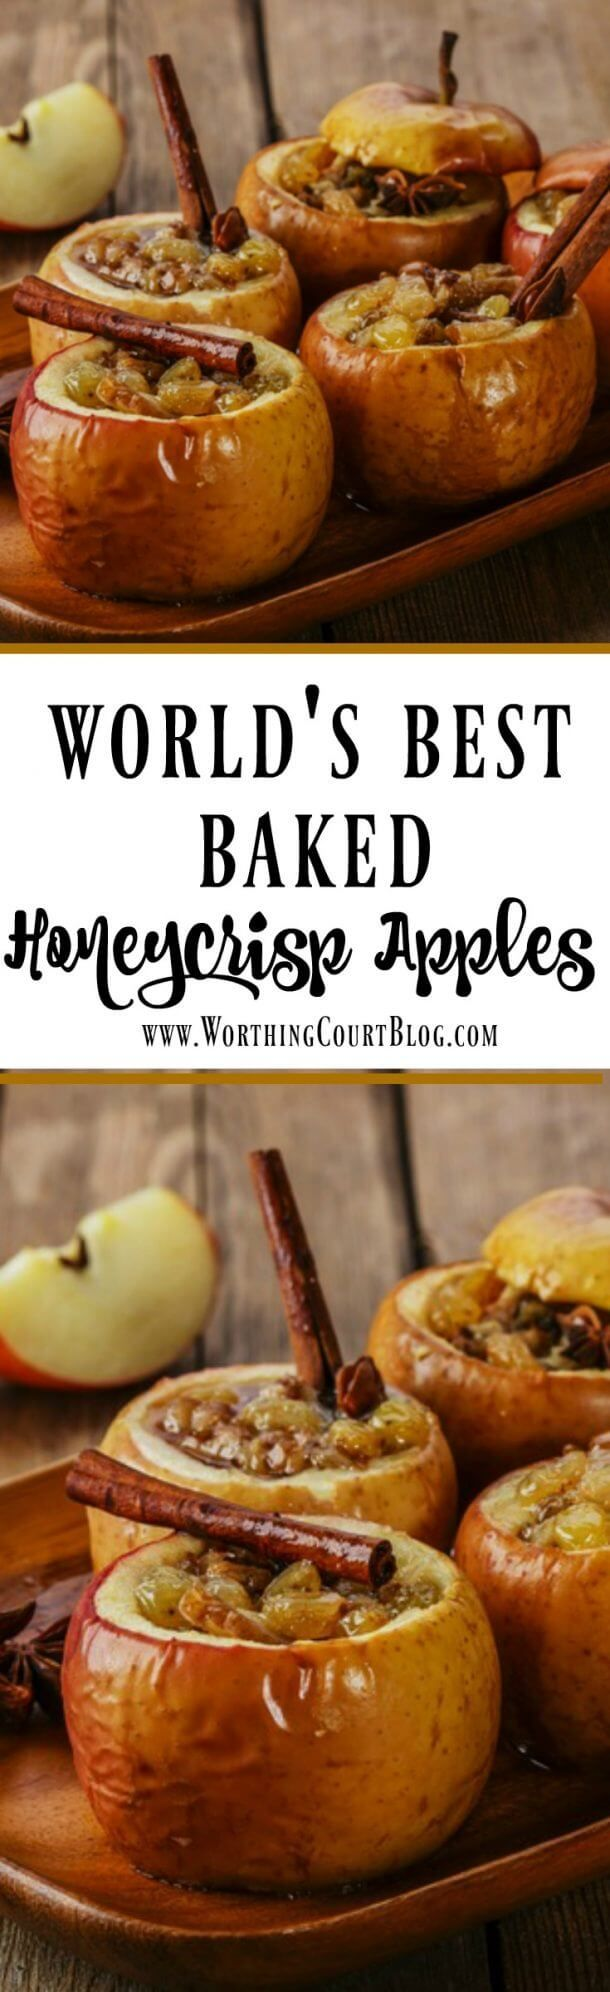 Baked Honeycrisp Apples